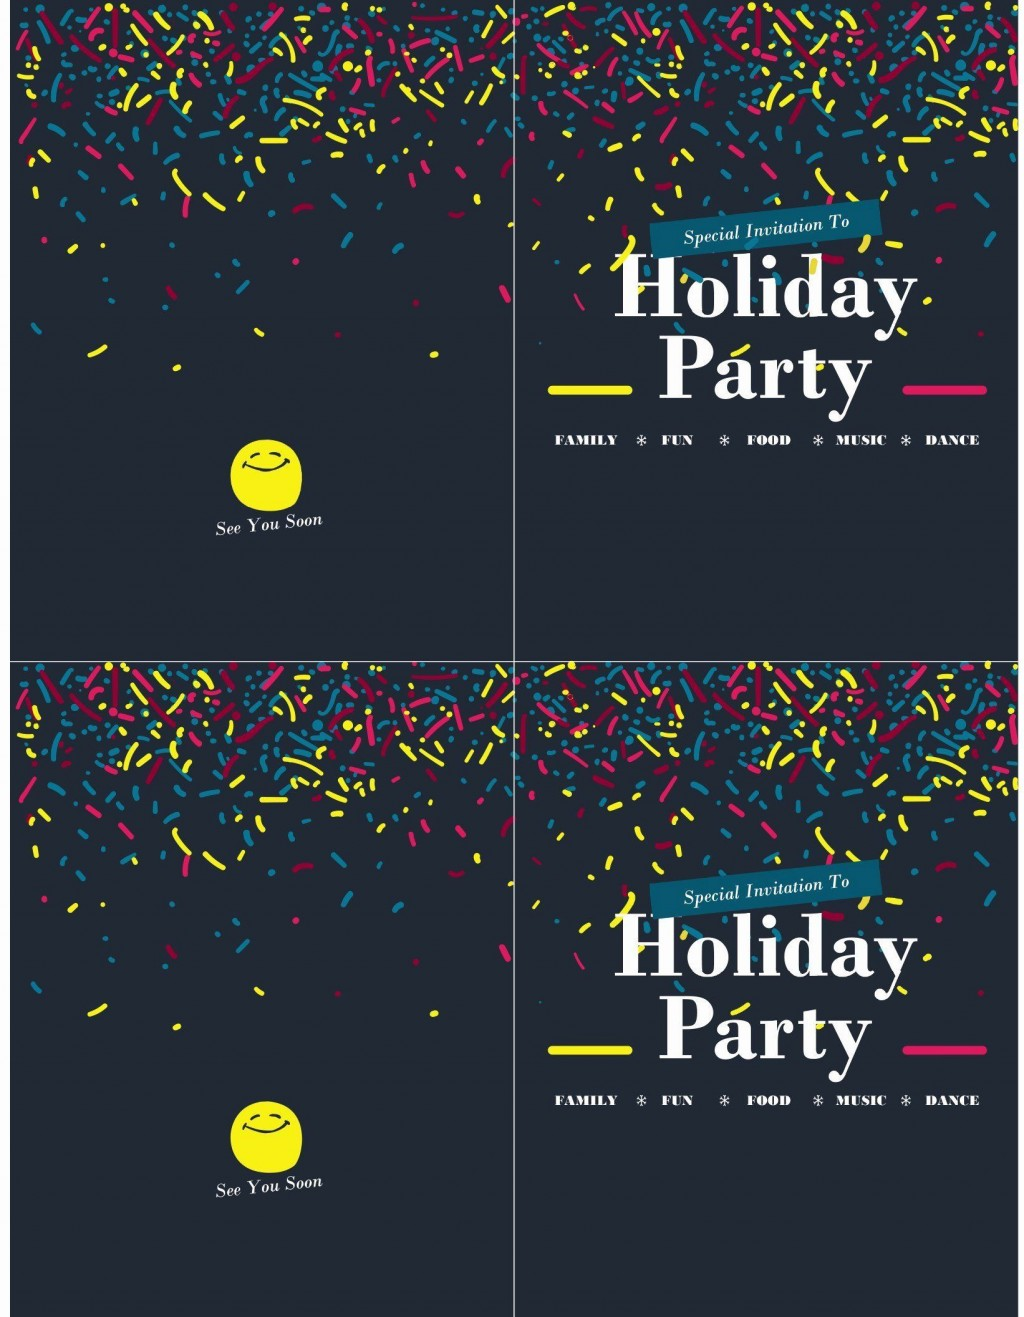 006 Awesome Microsoft Office Invitation Template Picture  Templates Holiday Party PublisherLarge